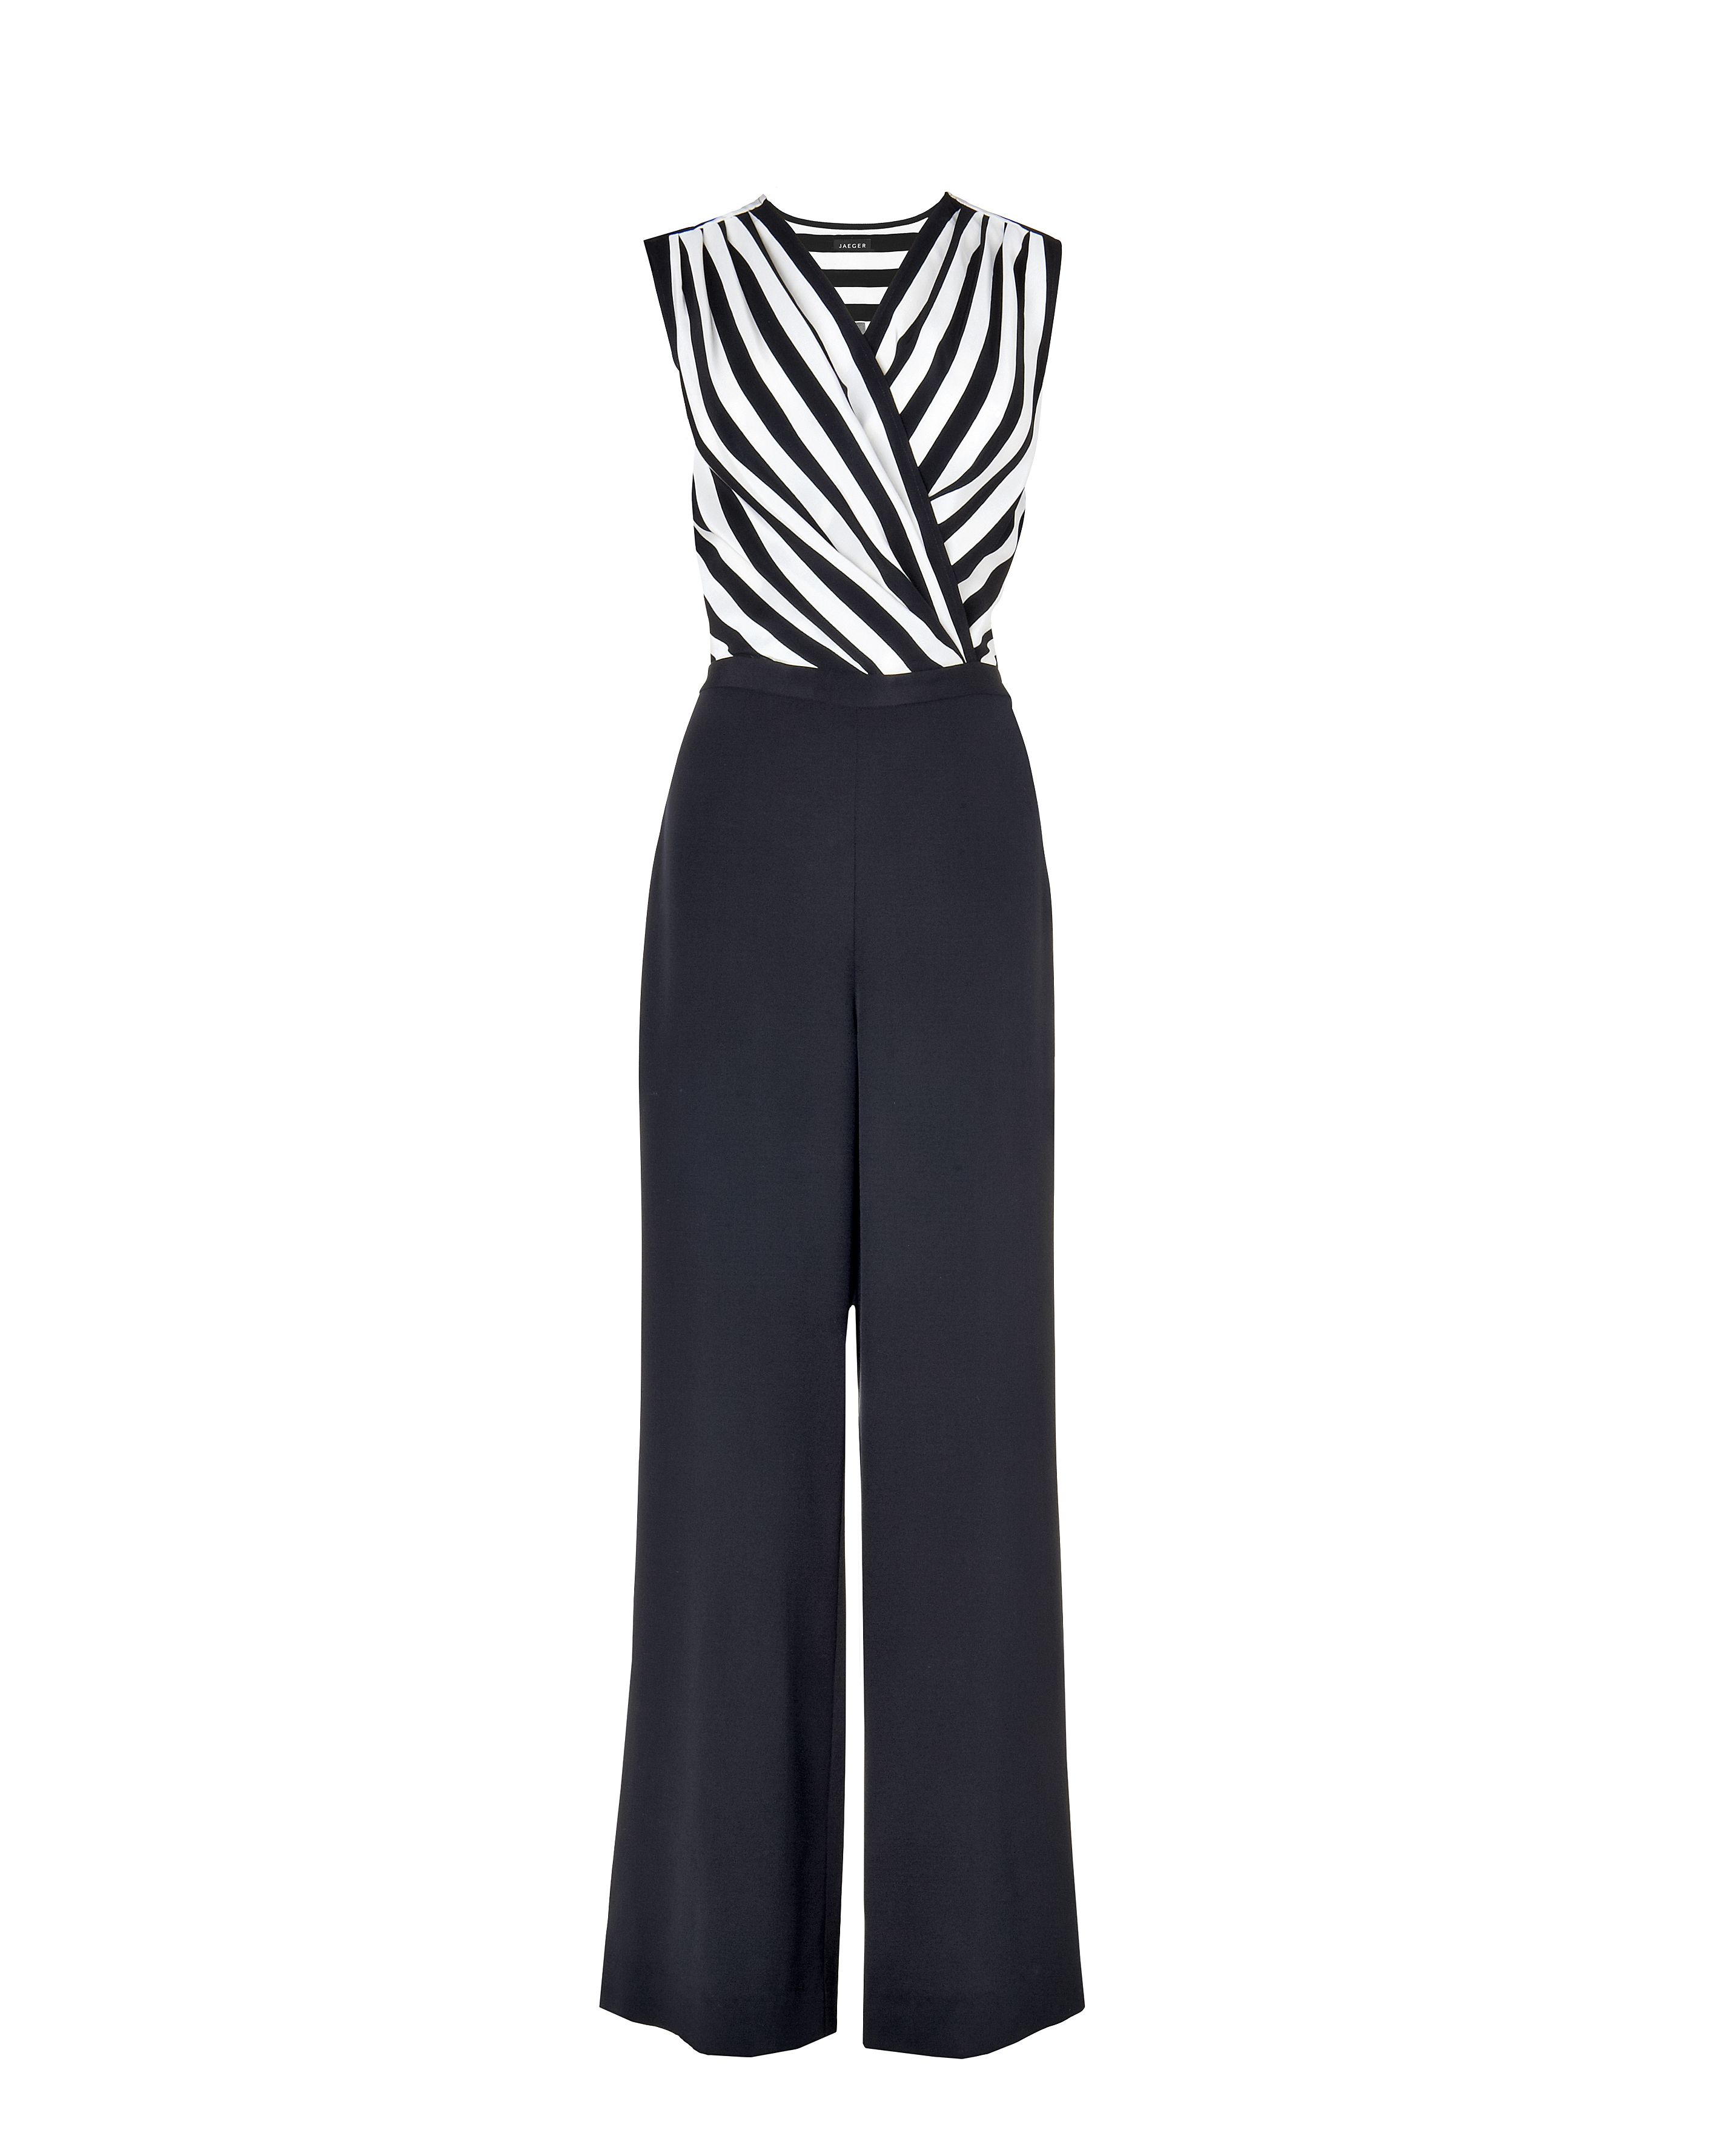 Silk monochrome stripe jumpsuit